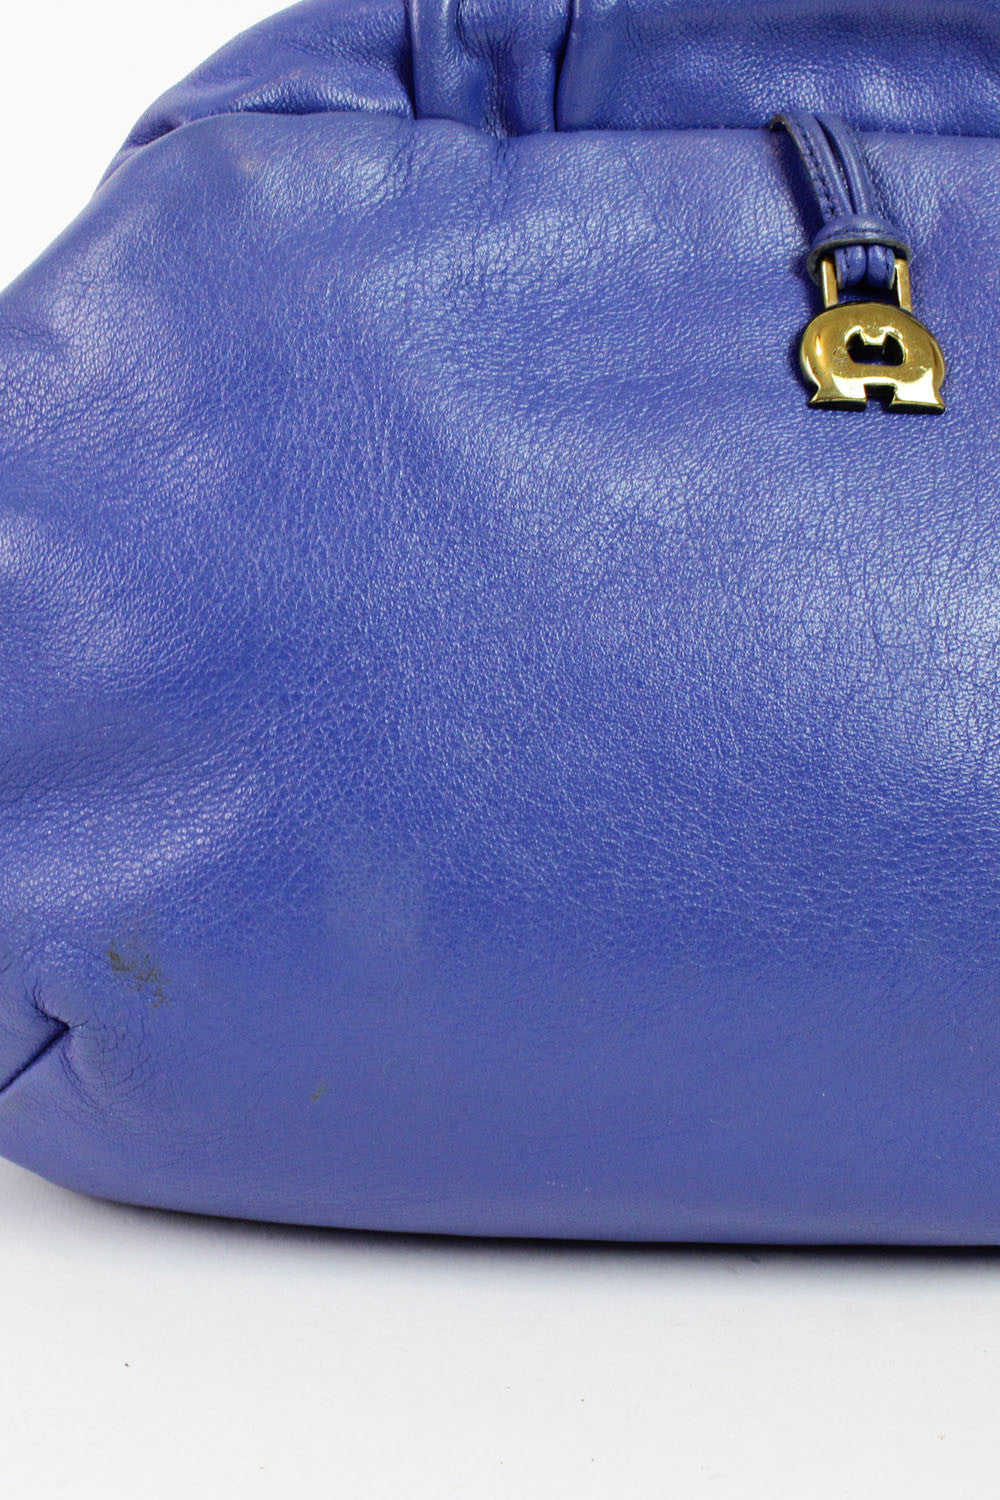 Etienne Aigner periwinkle clamshell leather bag